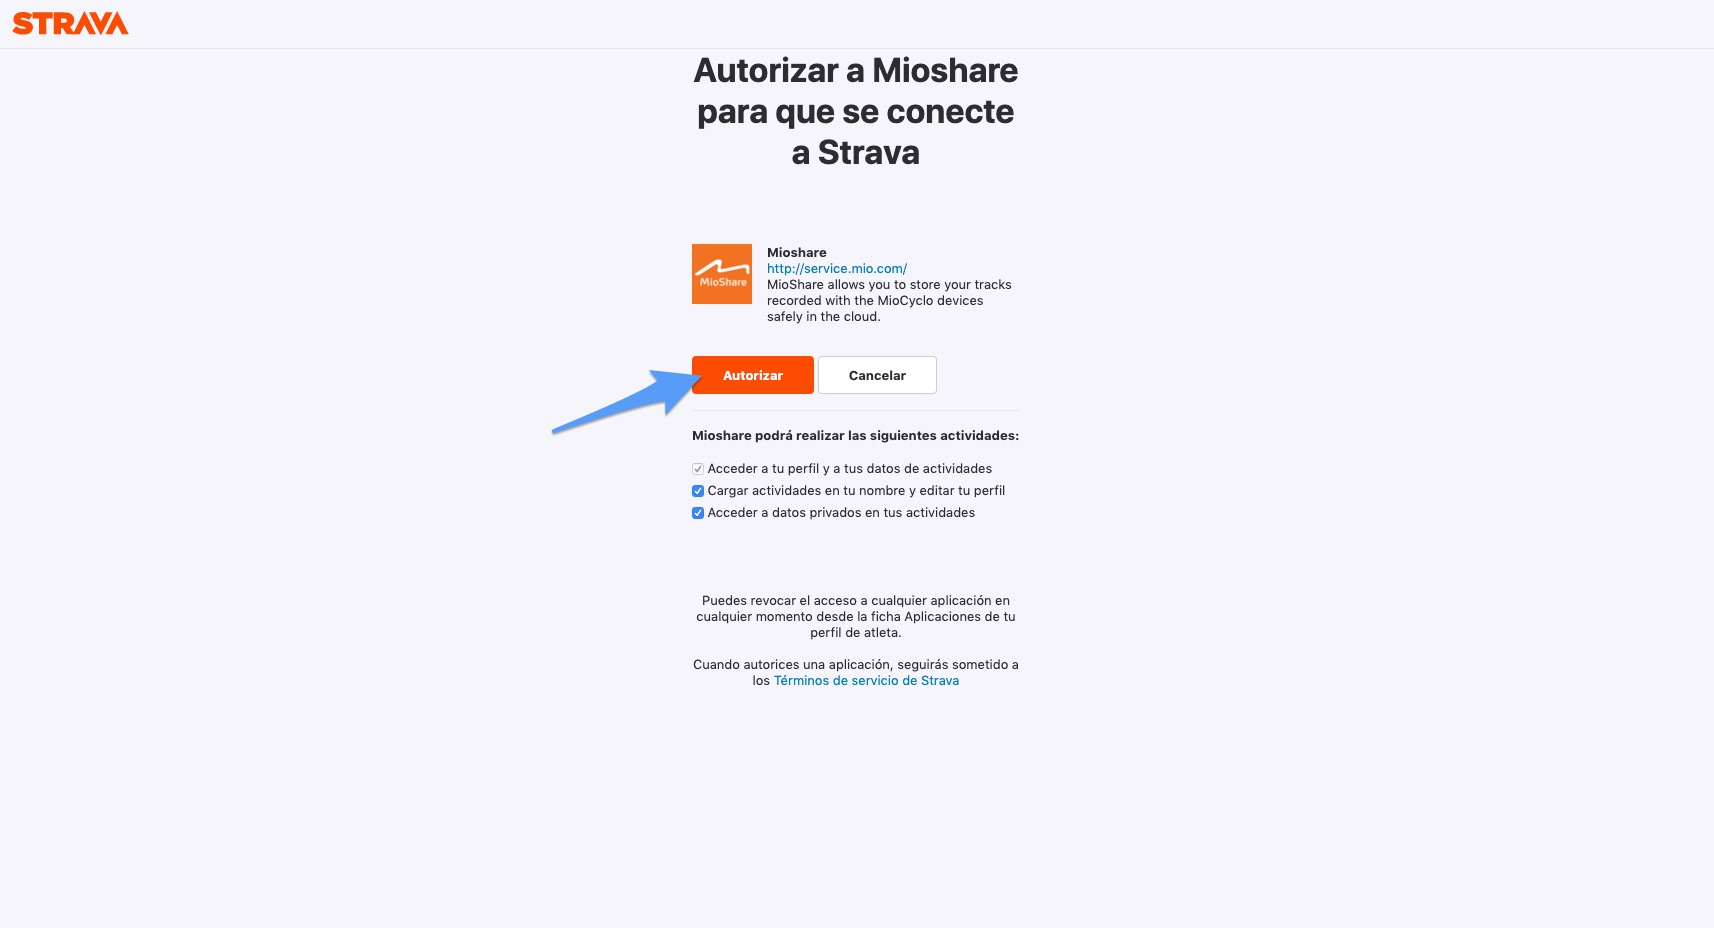 https___www_strava_com_oauth_authorize_client_id_72_redirect_uri_http___link_mioshare_com_strava_auth_TnR85JdqEP_d90Wh42fXbmi0X5z33mTxbHy1VJOBCLA_3D_scope_view_private_write_state_TnR85JdqEP_d90Wh42fXbmi0X5z33mTxbHy1VJOBCLA__approval_prompt.jpg